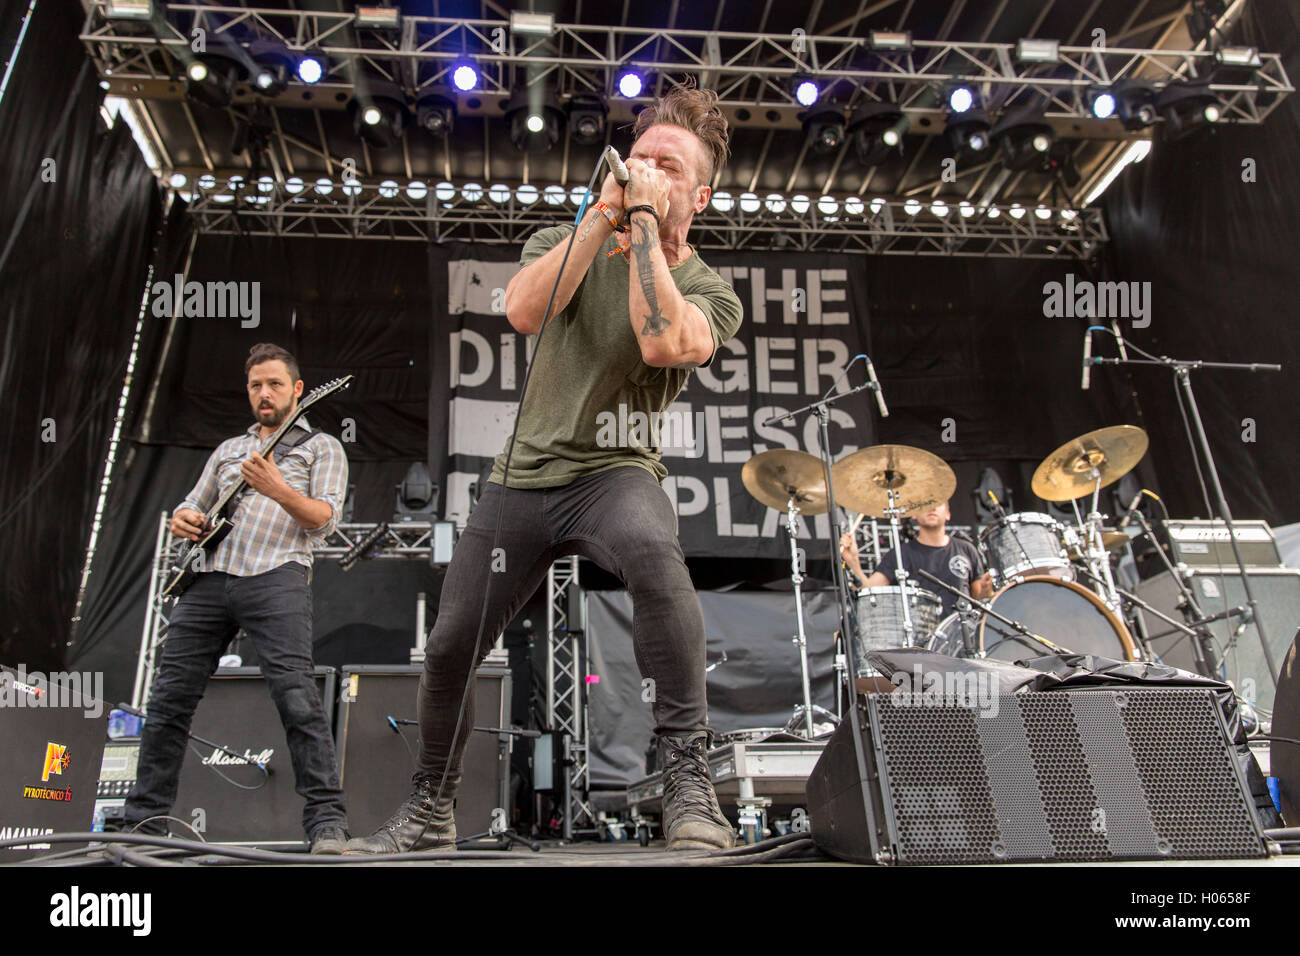 Chicago, Illinois, USA. 16th Sep, 2016. BEN WEINMAN, GREG PUCIATO and BILLY RYMER of Dillinger Escape Plan perform - Stock Image